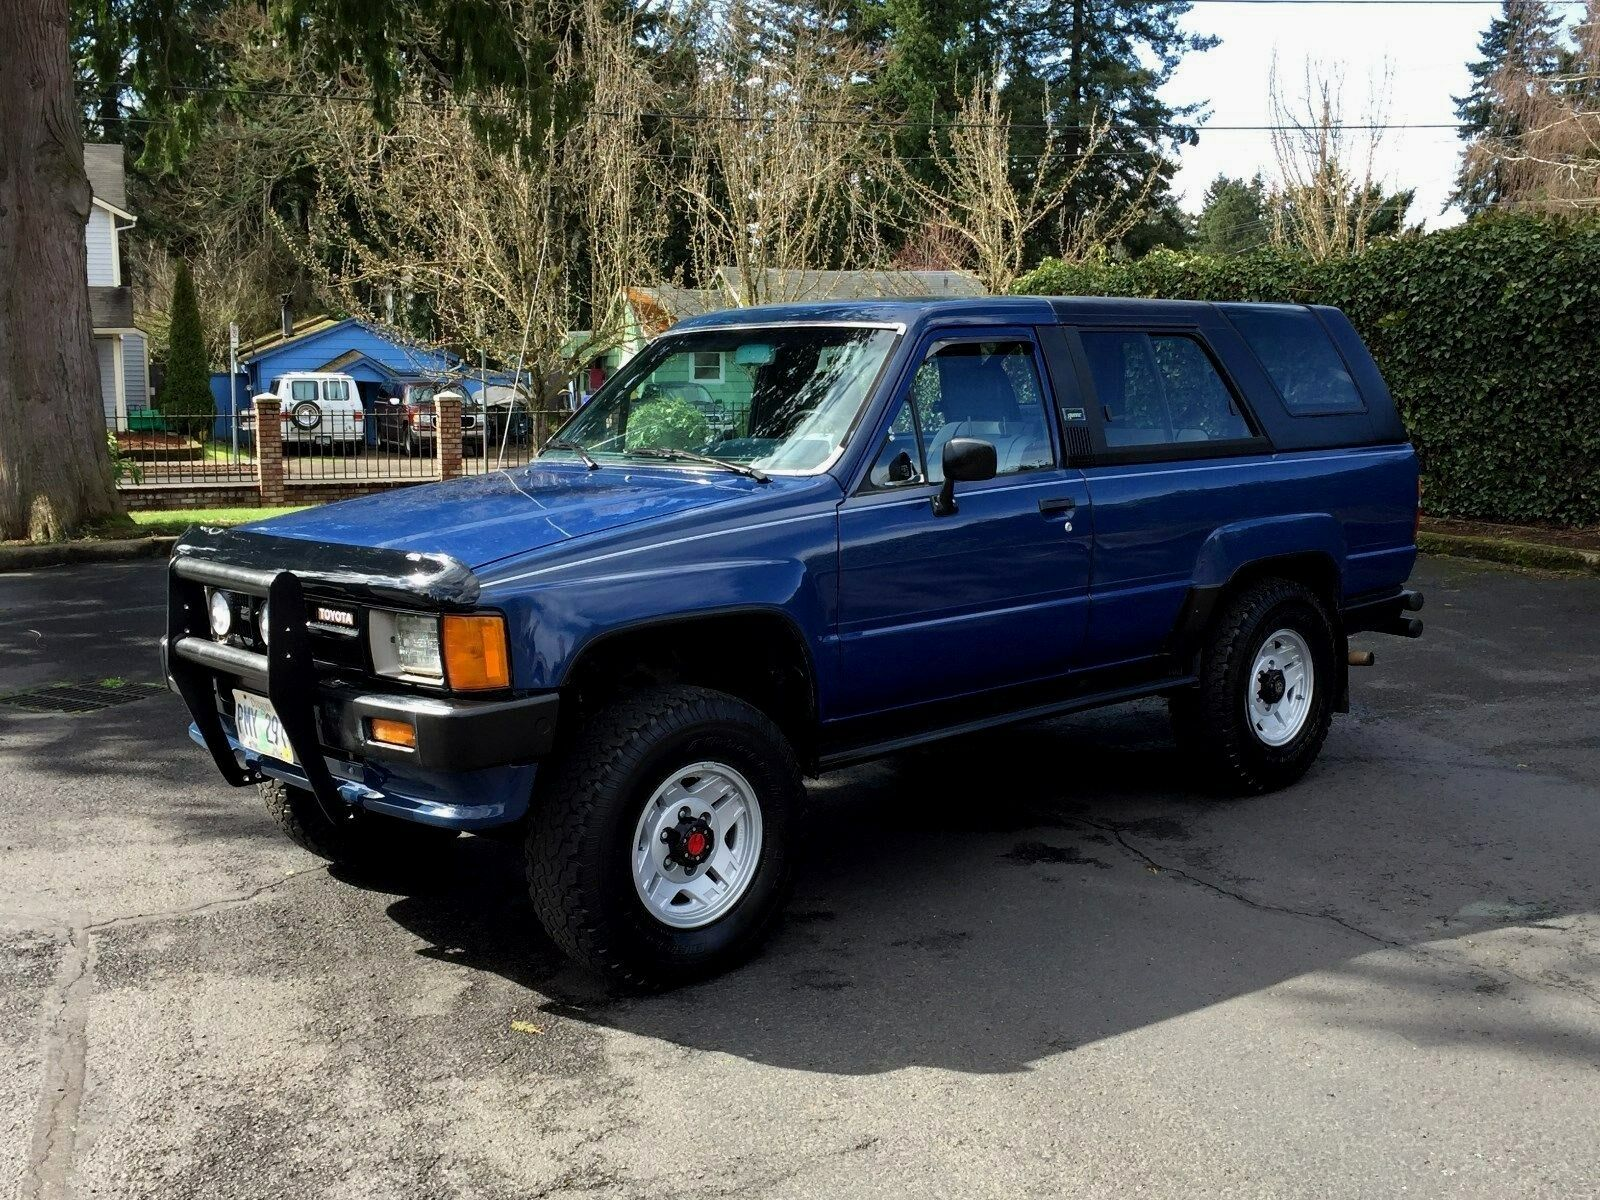 1986 Toyota 4Runner Deluxe 1986 Toyota 4-Runner 4x4 5-Speed 22RE 4'Cyl Eng' 125k Orig Miles Rust Free Nice!